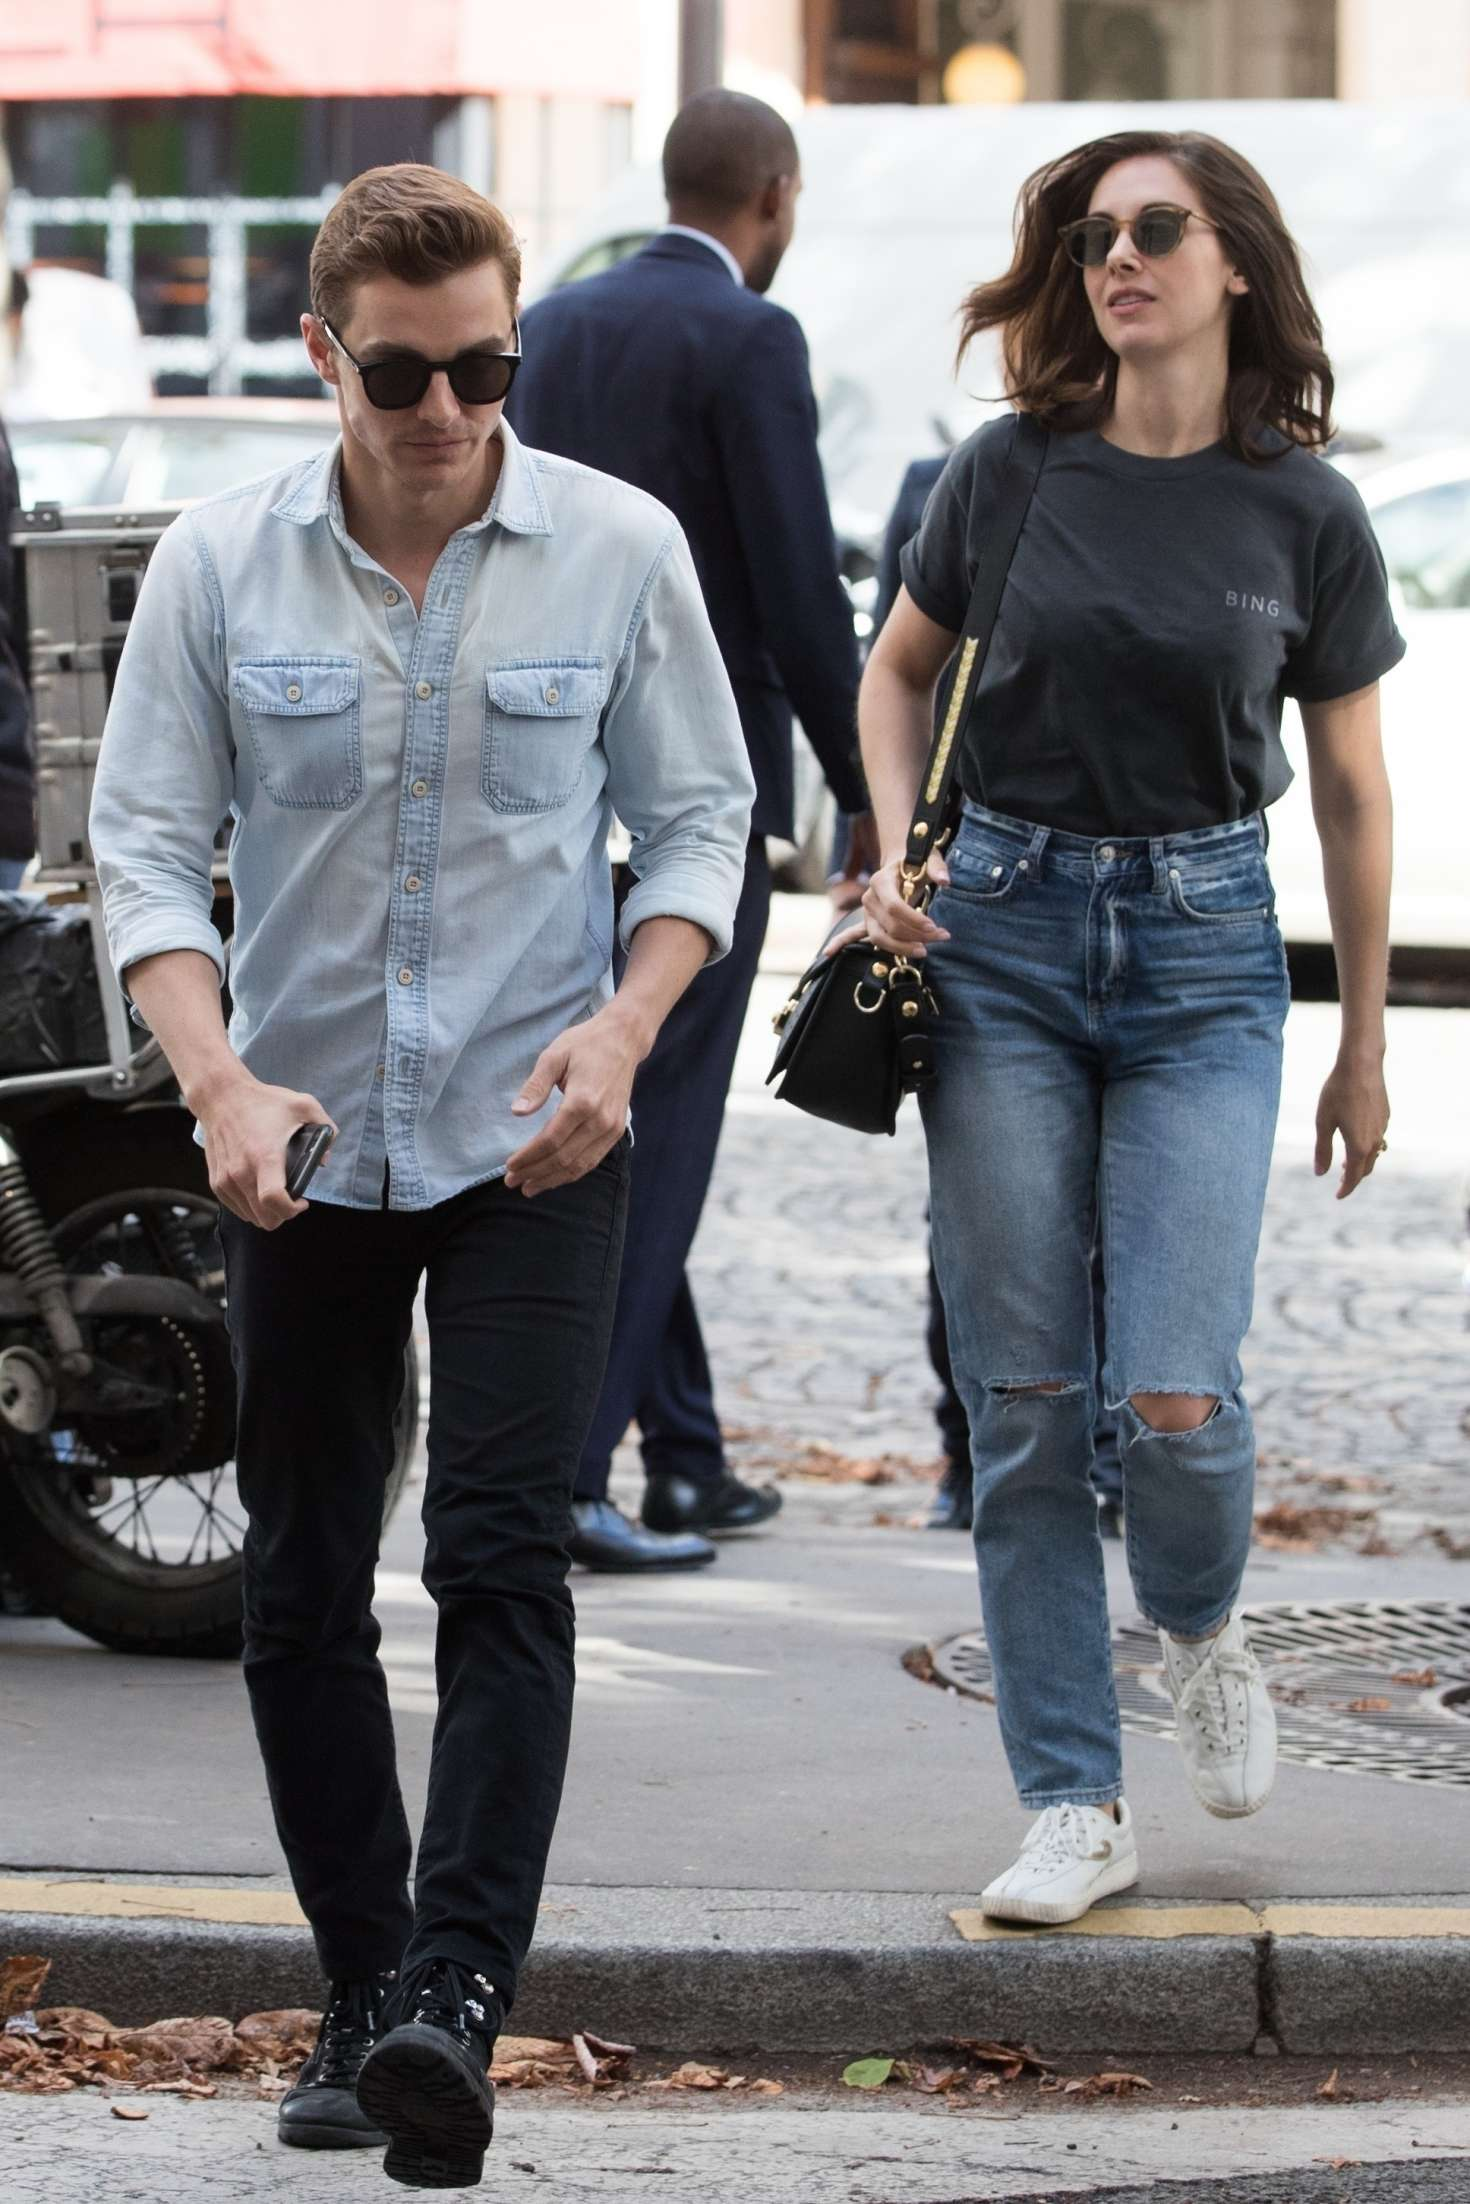 Alison Brie 2018 : Alison Brie and Dave Franco: Arrive in Paris -07